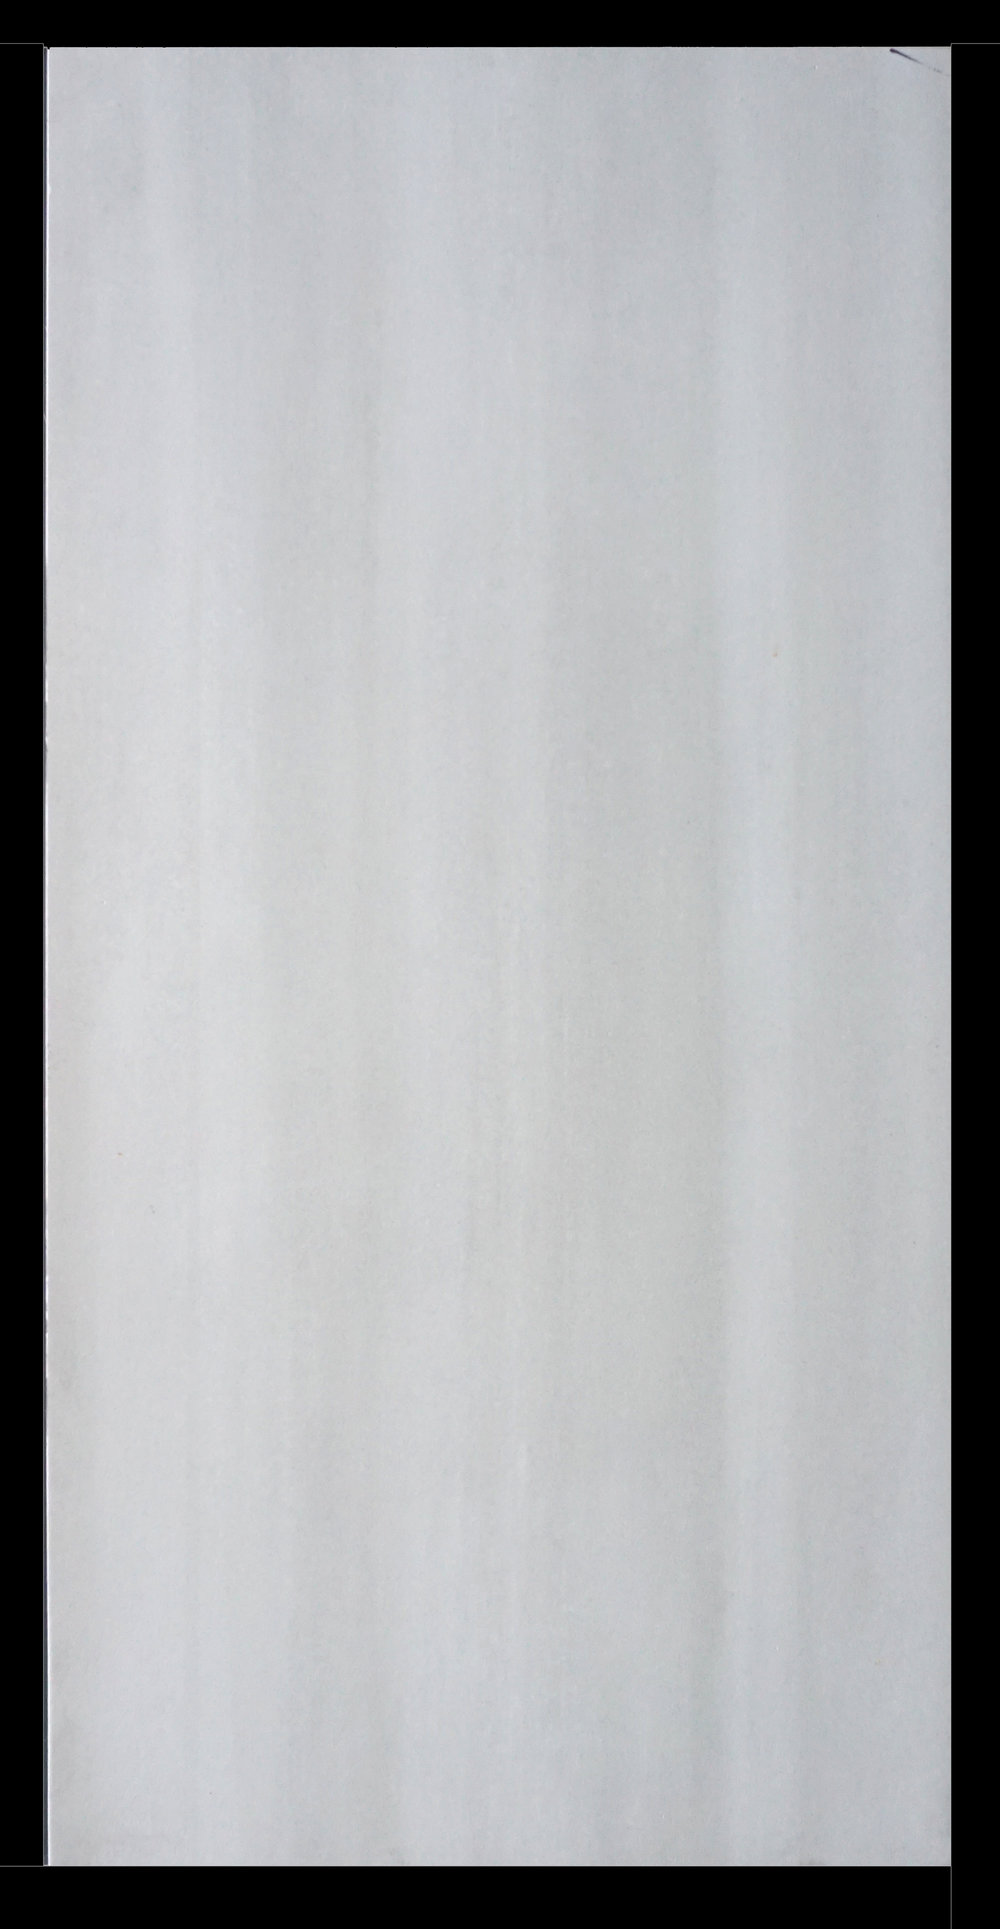 "GALAXY GRIS 12""X24"" - GLAZED PORCELAIN 8 PC/CTN (15.5 SF); 40 CTN/PLT"